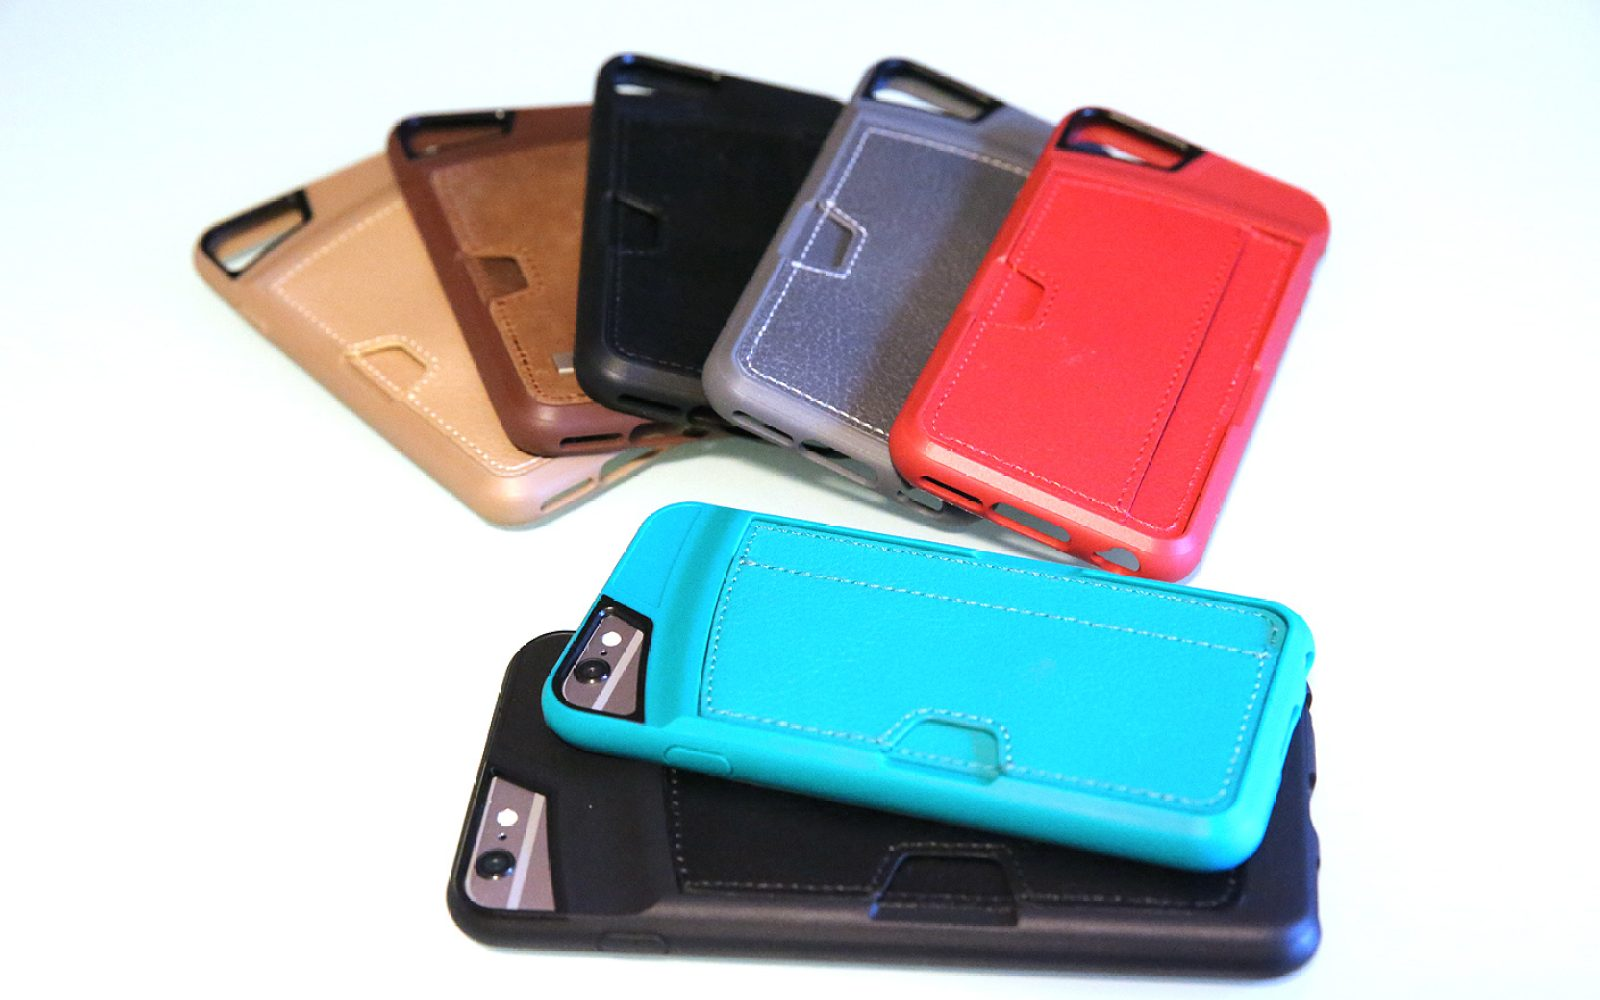 best sneakers 3ba66 a7c76 Review: CM4's iPhone 6 and 6 Plus Q Card Cases are high-class ...